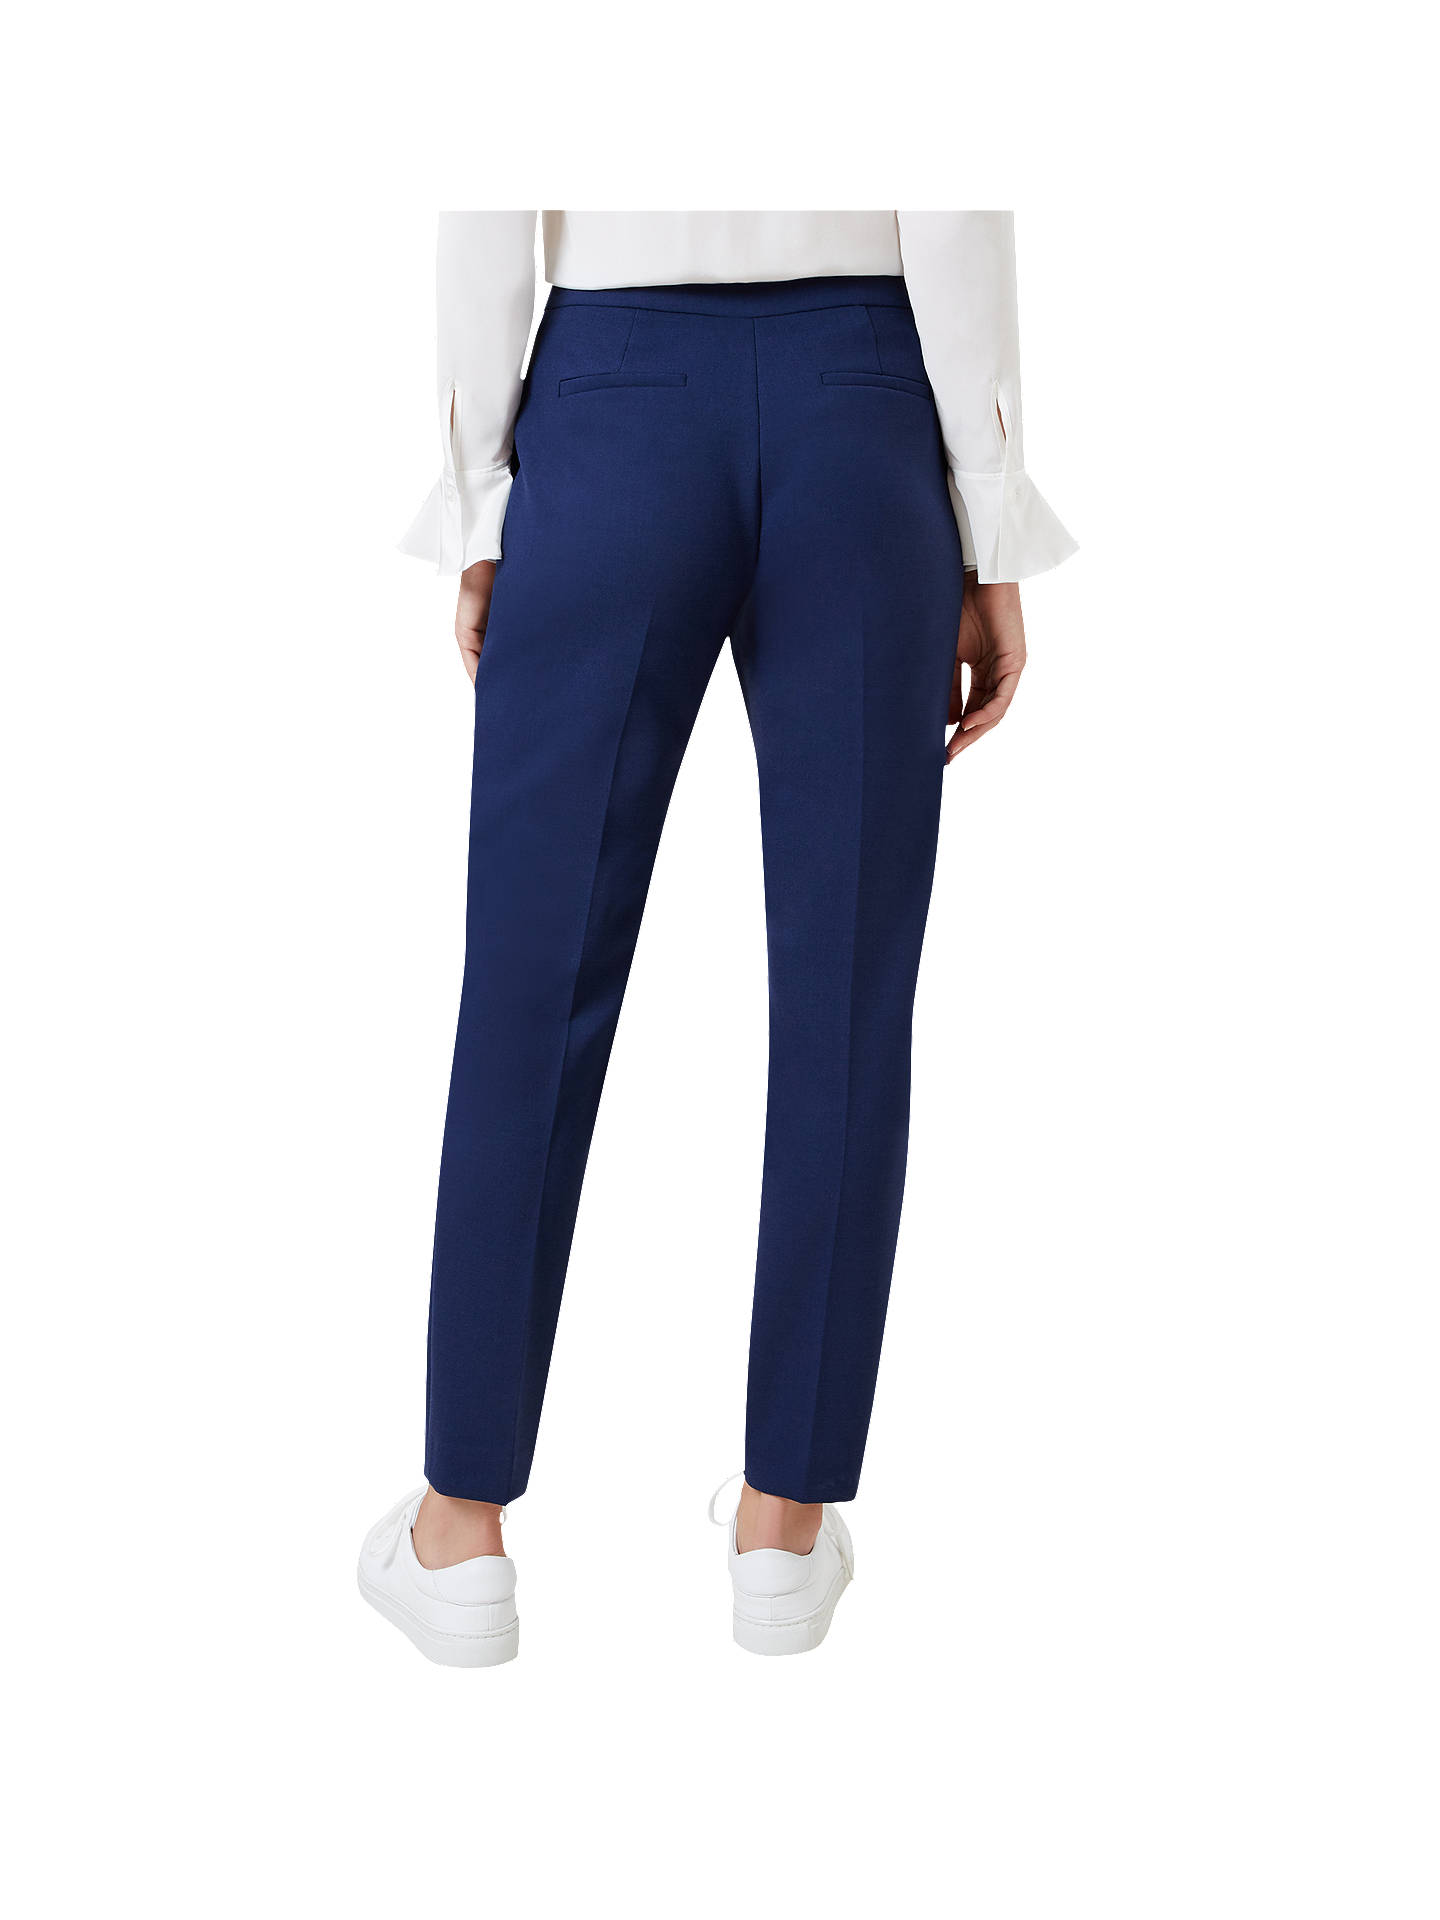 BuyHobbs Tailored Odella Trousers, French Navy, 12 Online at johnlewis.com